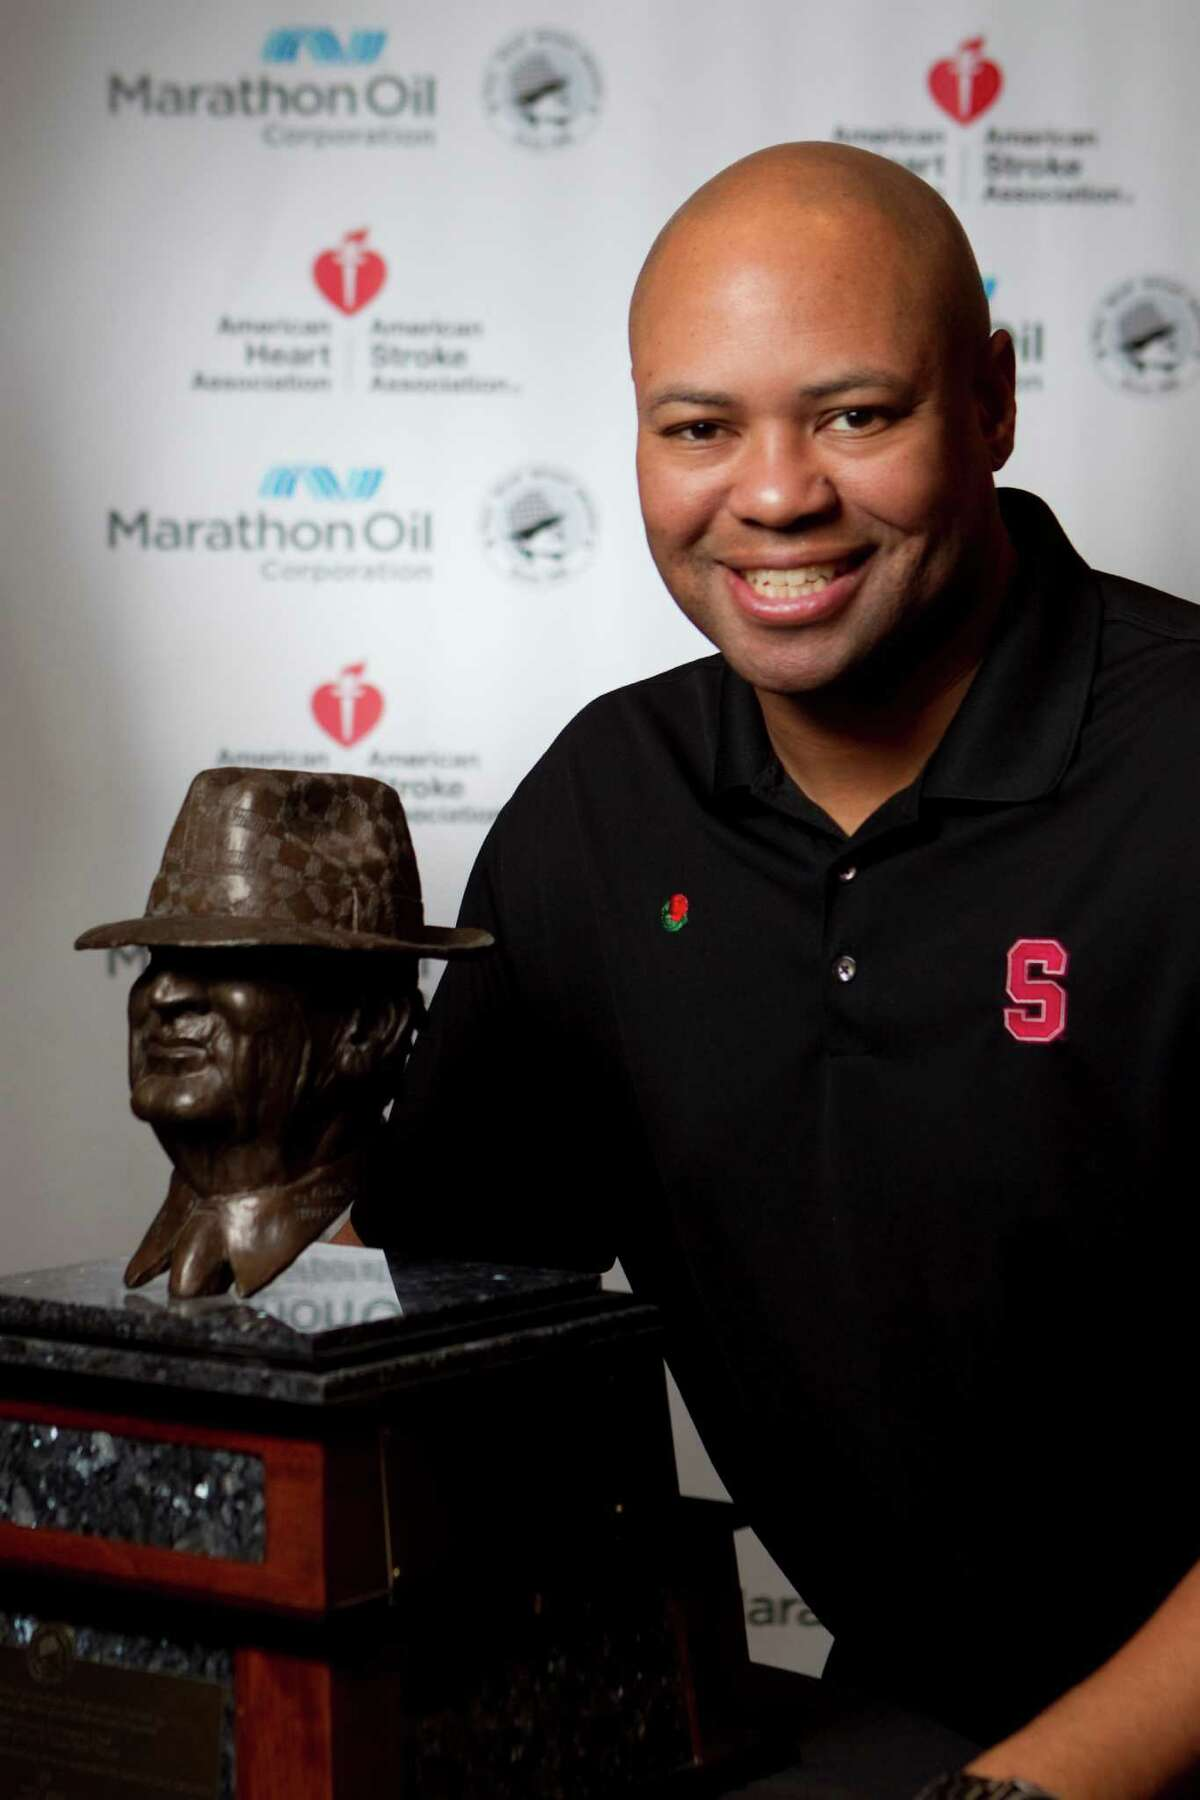 Stanford head coach David Shaw is a candidate for the 2013 Marathon Oil Corporation Paul 'Bear' Bryant Award, Thursday, Jan. 17, in Houston.